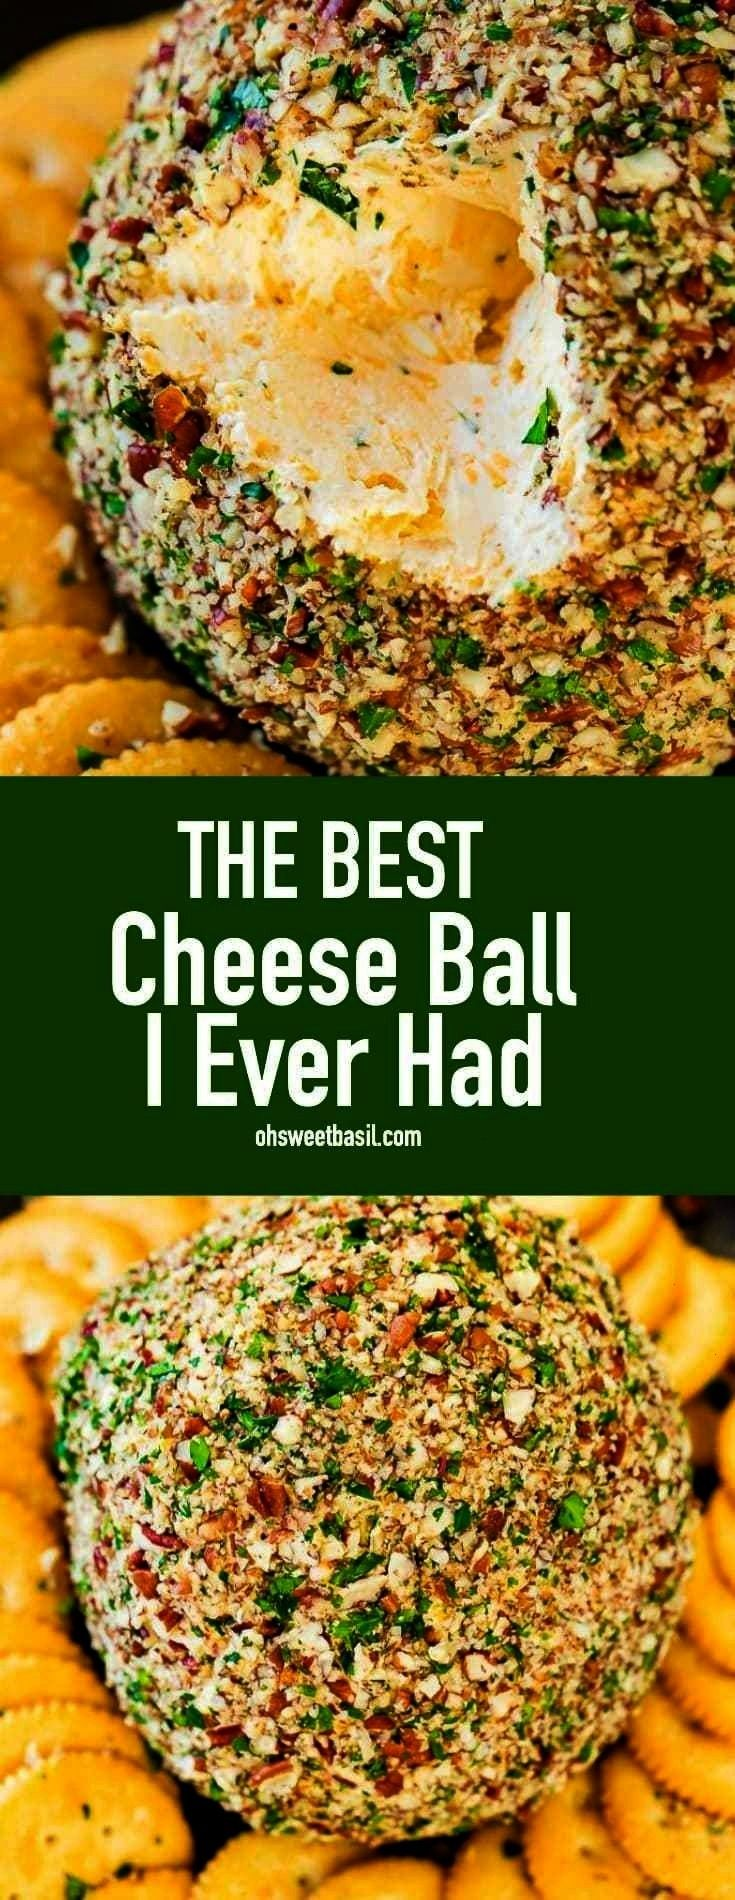 no idea that a cheese ball could be this good. Last year I had the best cheese ball I ever had and